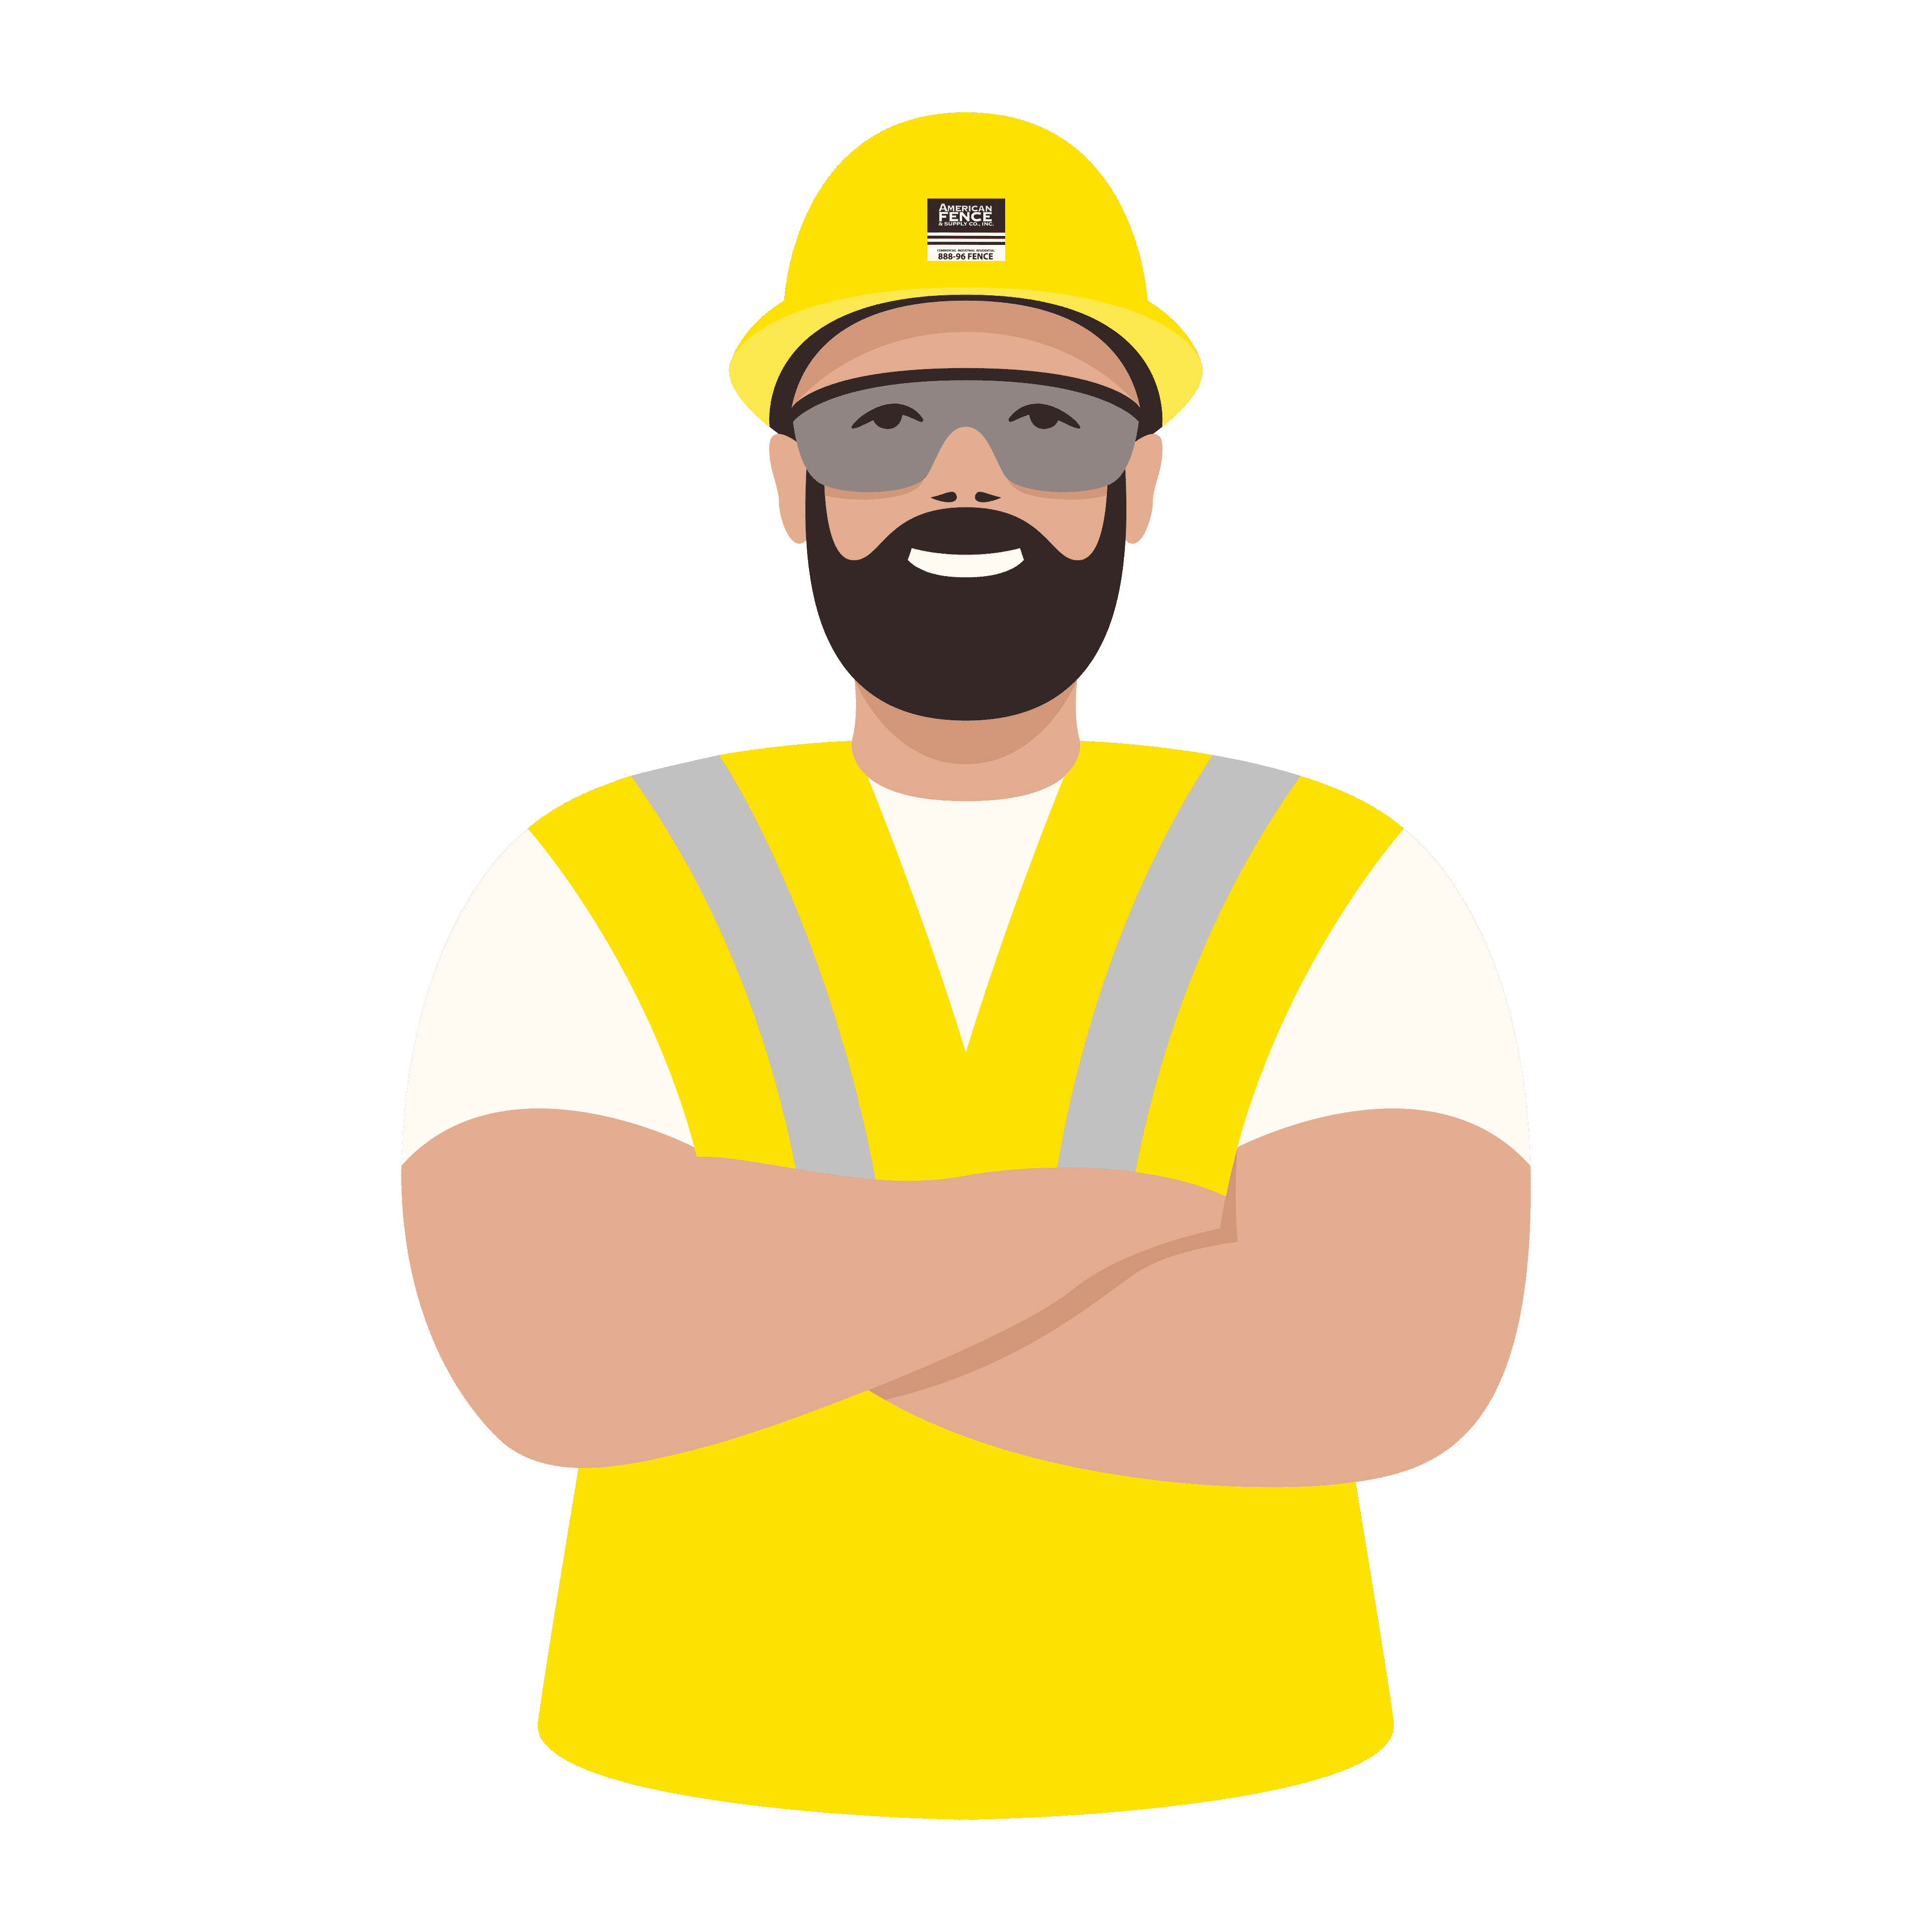 Illustration for construction and labor careers (jobs) page at American Fence & Supply Co., Inc.